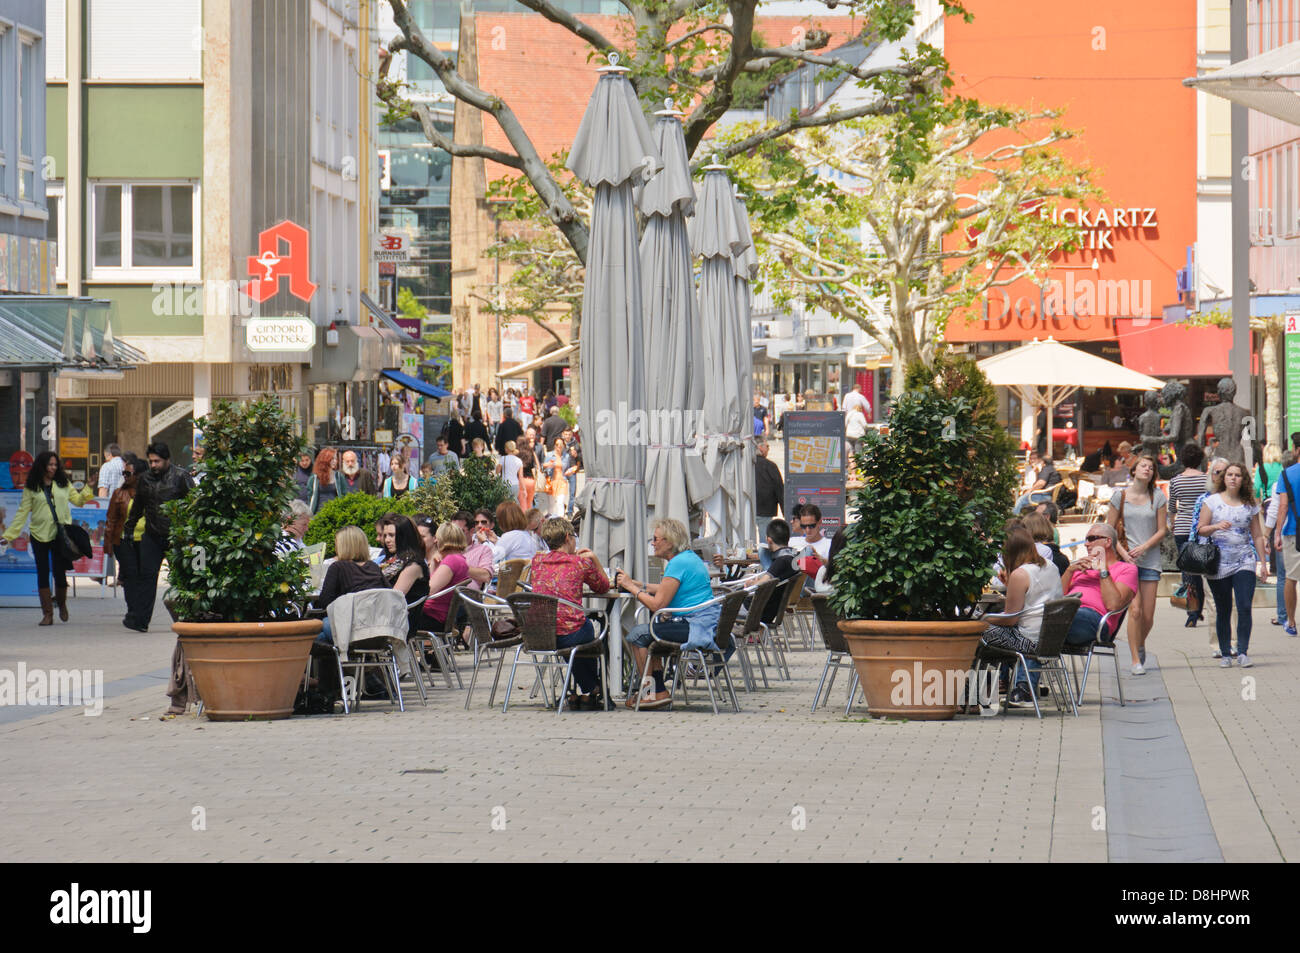 Summer in the city – people sitting in a street cafe, persons window shopping in a downtown pedestrian zone, Heilbronn - Stock Image